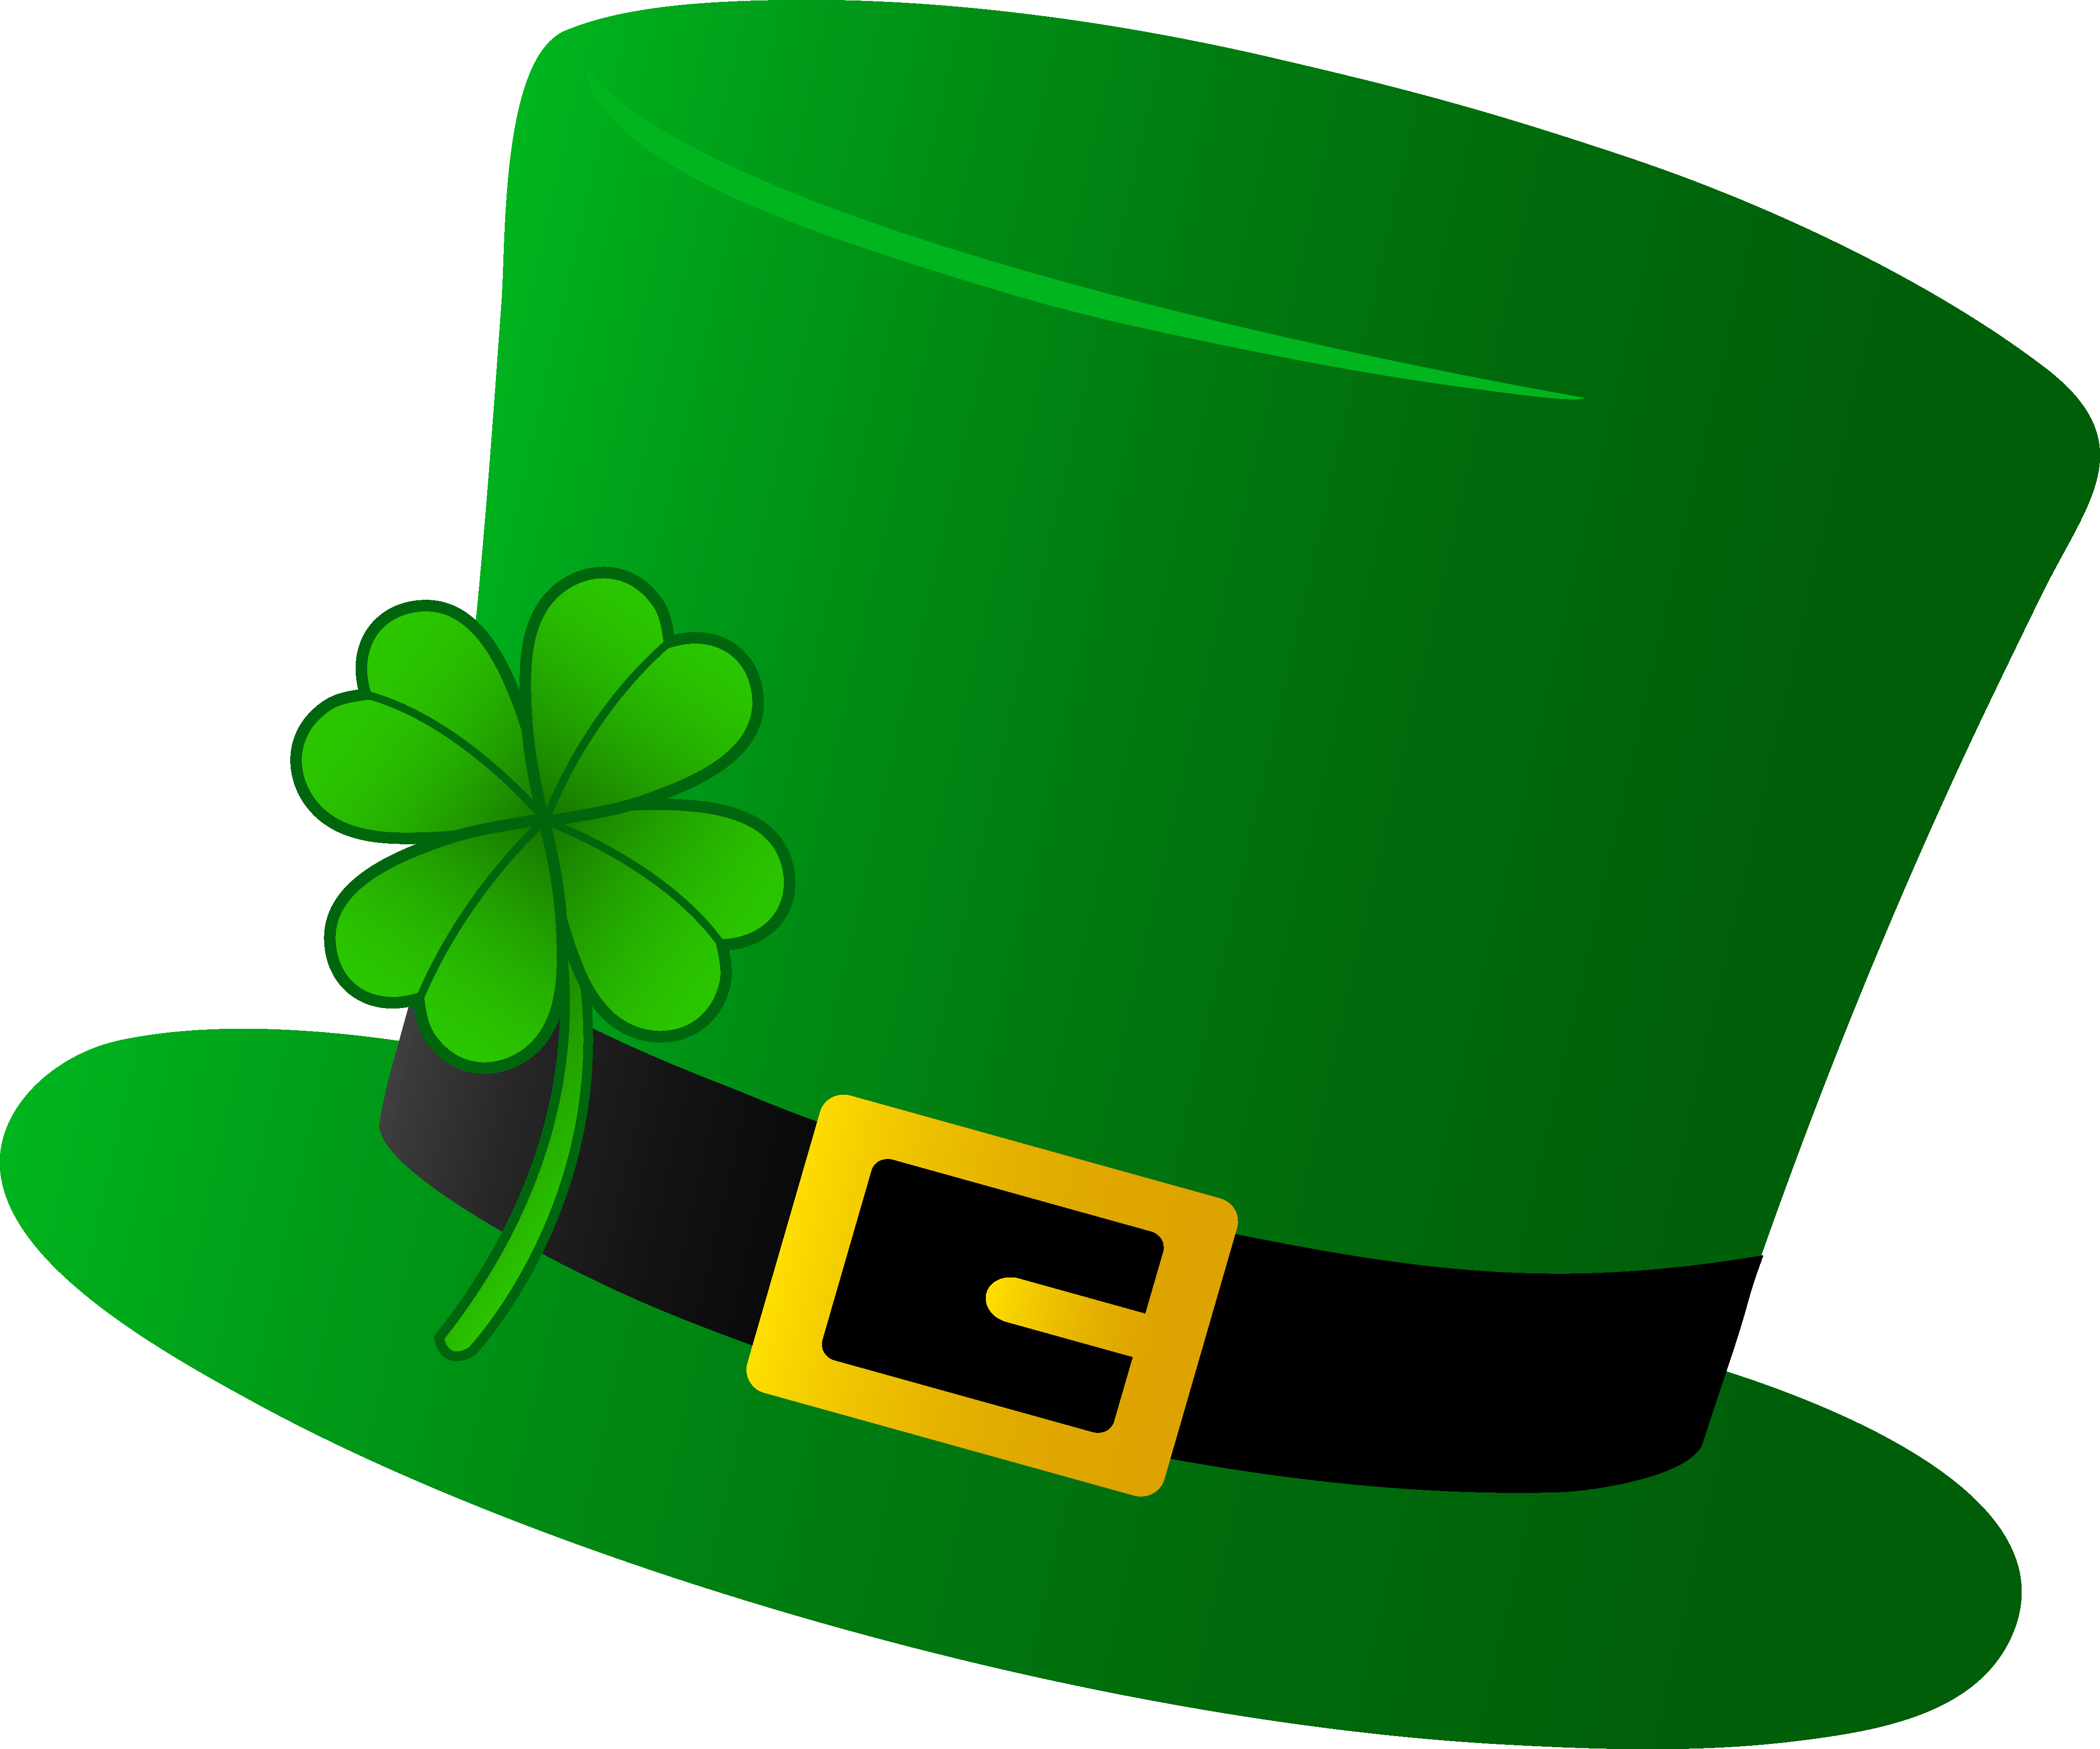 4552x3791 Bee Clipart St Patrick's Day